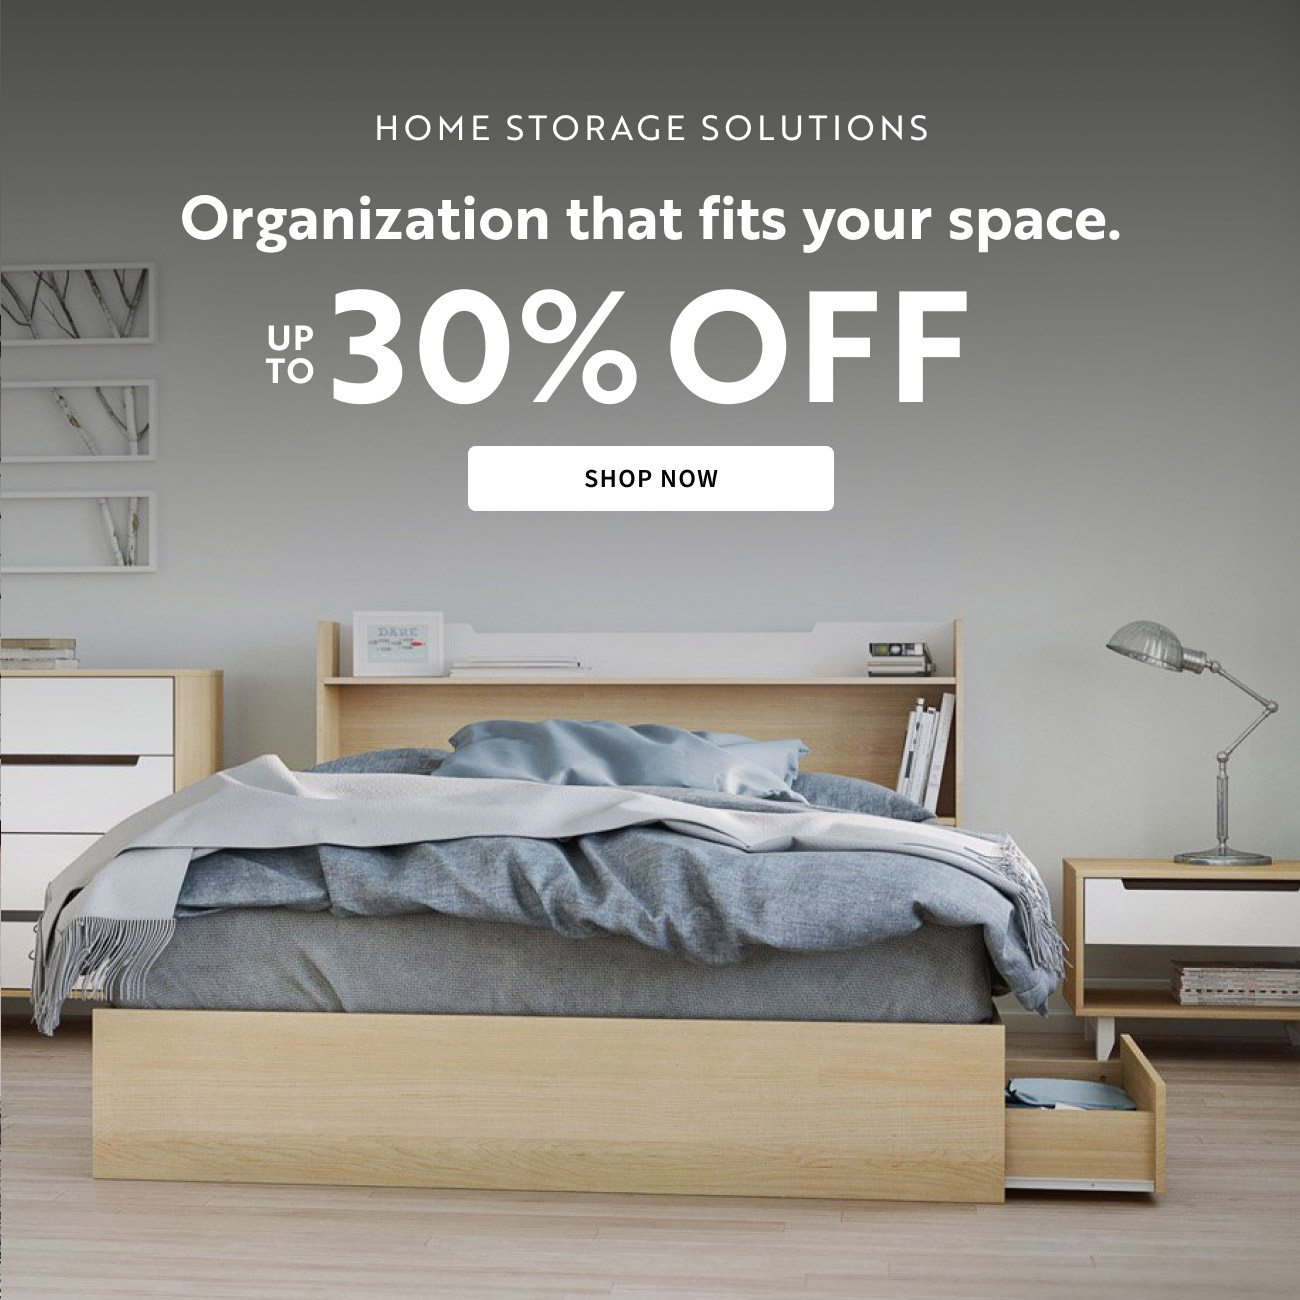 Home Storage Solutions   Up to 30% Off   Shop Now